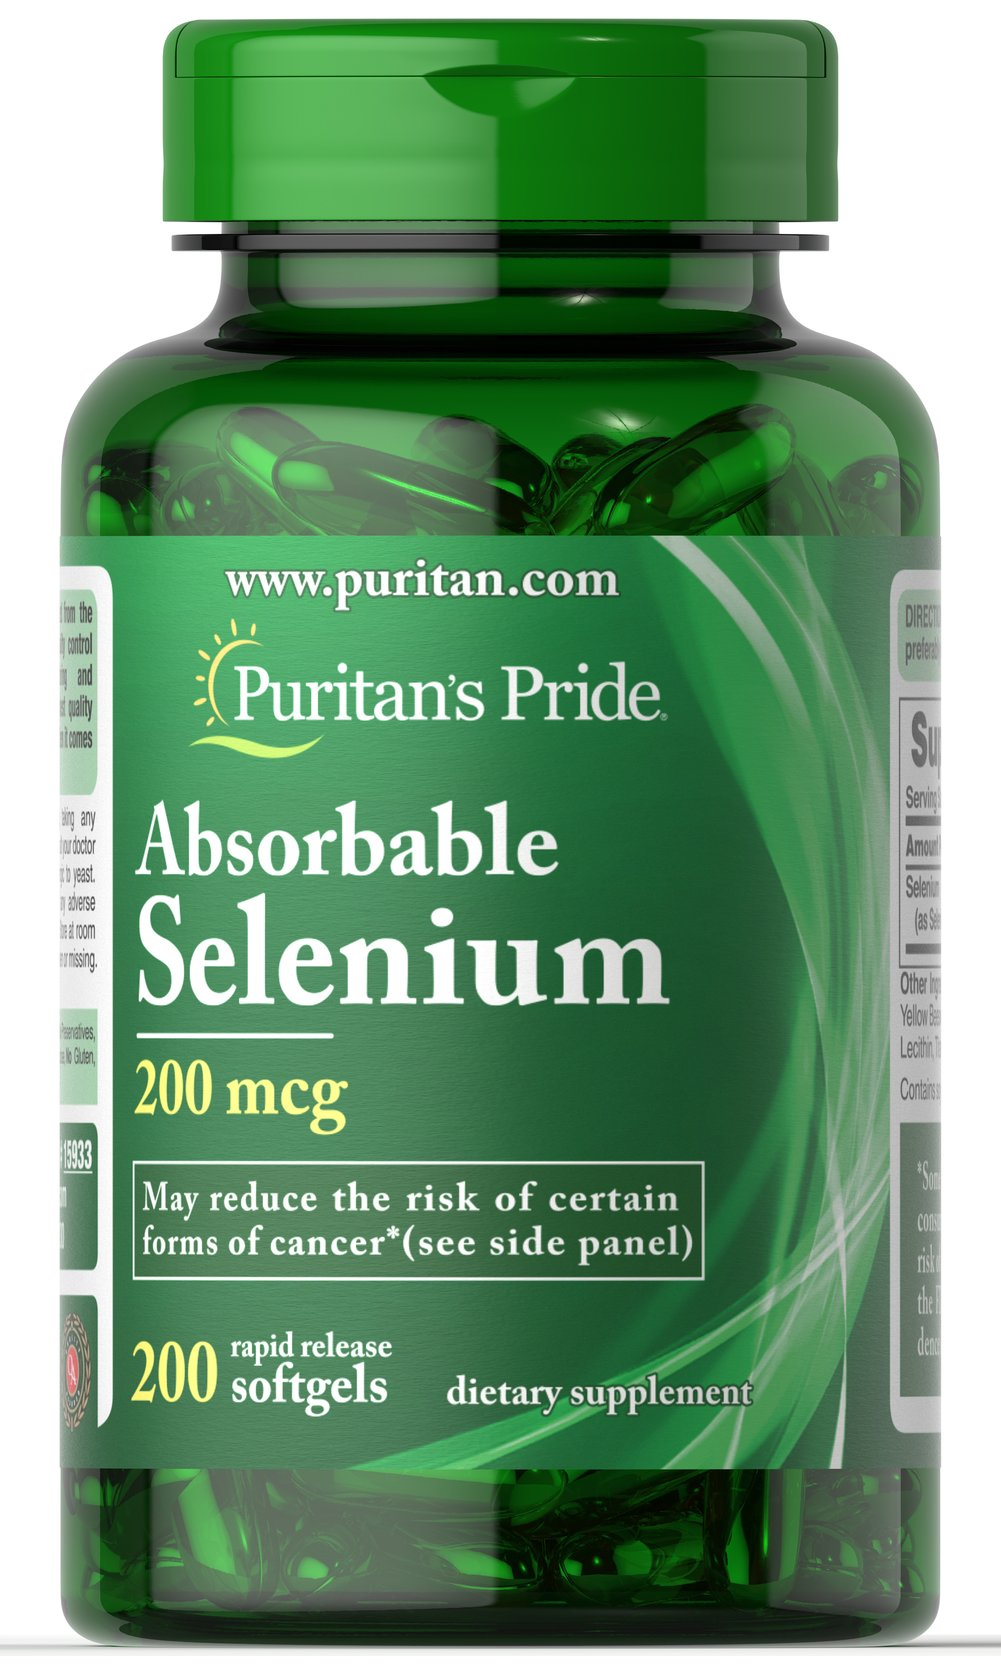 Absorbable Selenium 200 mcg <p>Now this powerful antioxidant is even easier for the body to utilize — new Absorbable Selenium from Puritan's Pride.  It's well known as a significant help in fighting cell-damaging free radicals in the body and in supporting a healthy immune system**. Get all the antioxidant and immune system power of selenium in a readily absorbable form with Puritan's Pride Absorbable Selenium Softgels.**</p> 200 Softgels 200 mcg $15.99